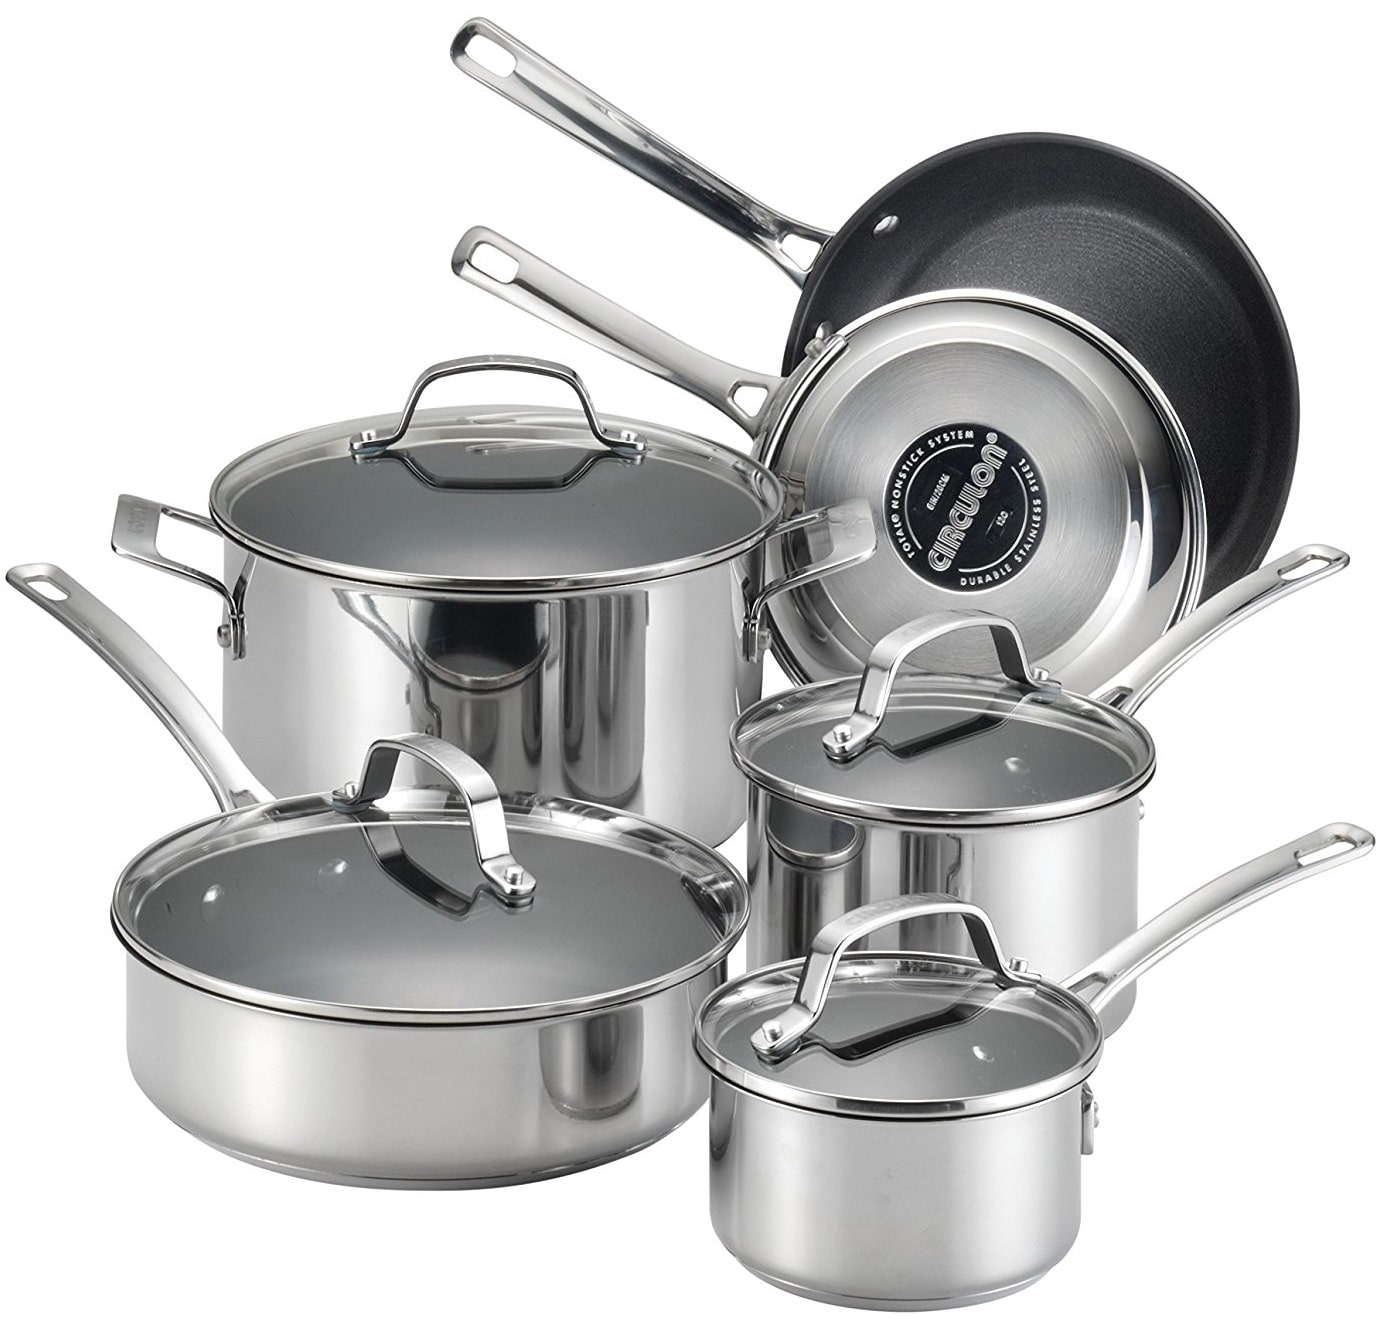 The Best Non Stick Induction Cookware Modern Options For